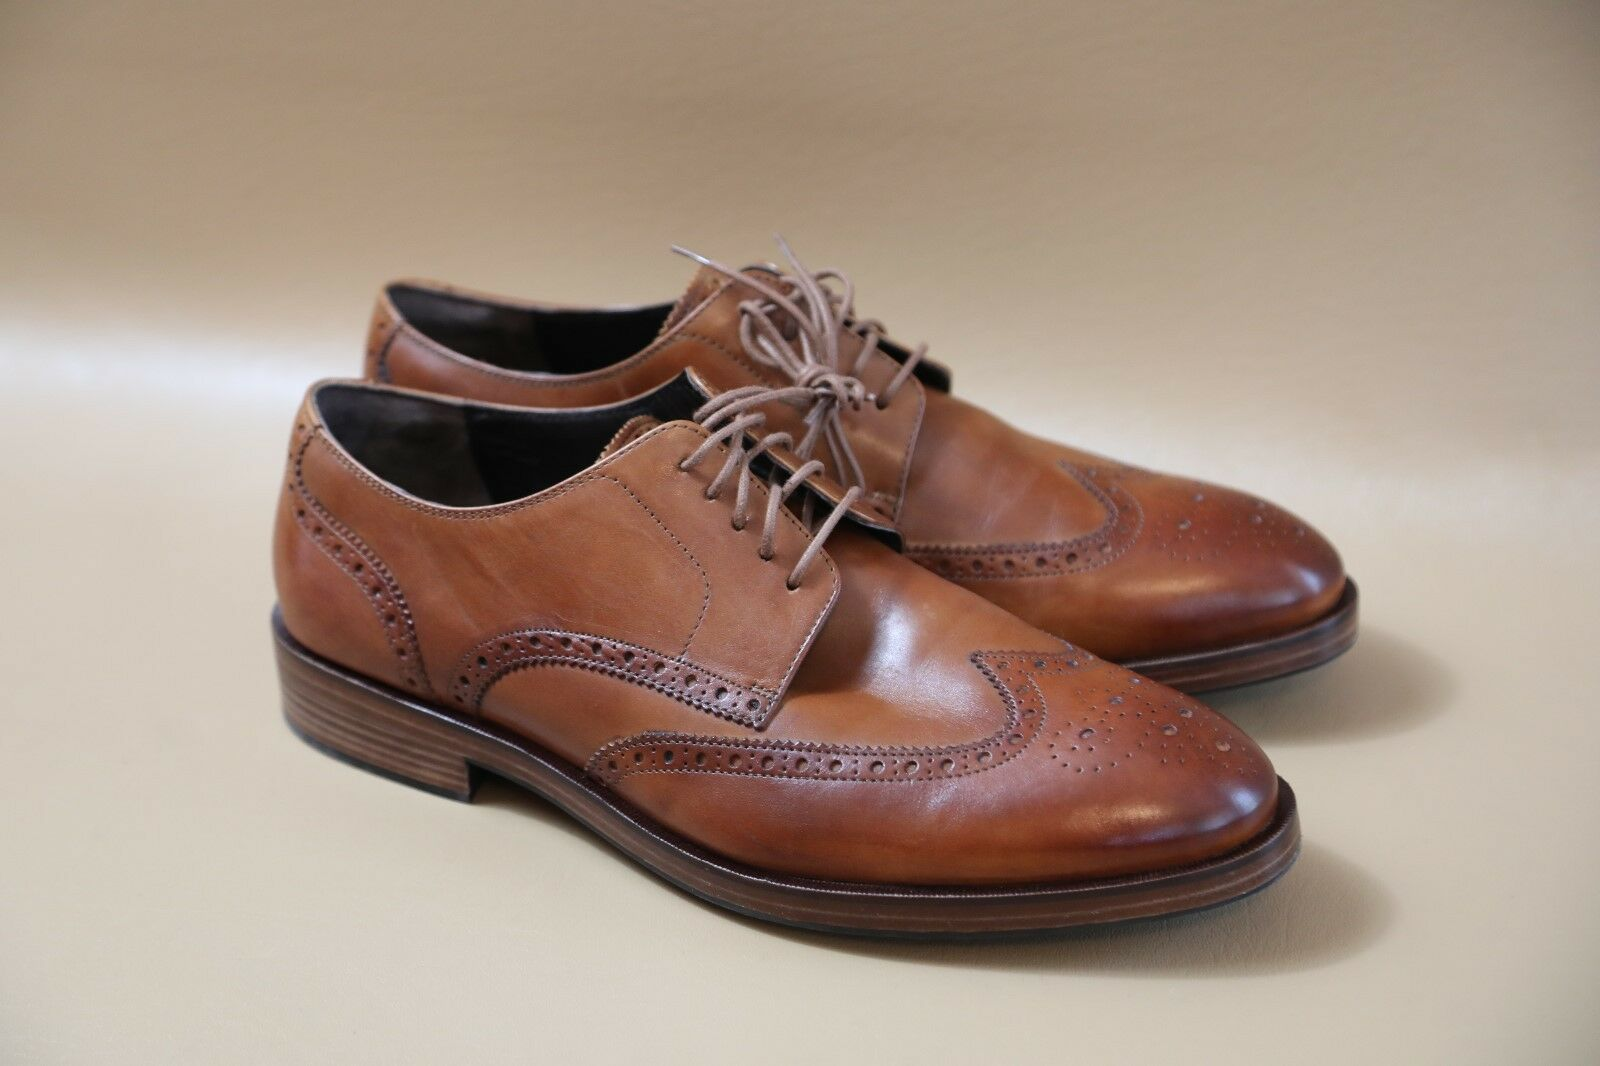 Cole Haan Cambridge Wingtip Oxfords Size 10 M  retail   260